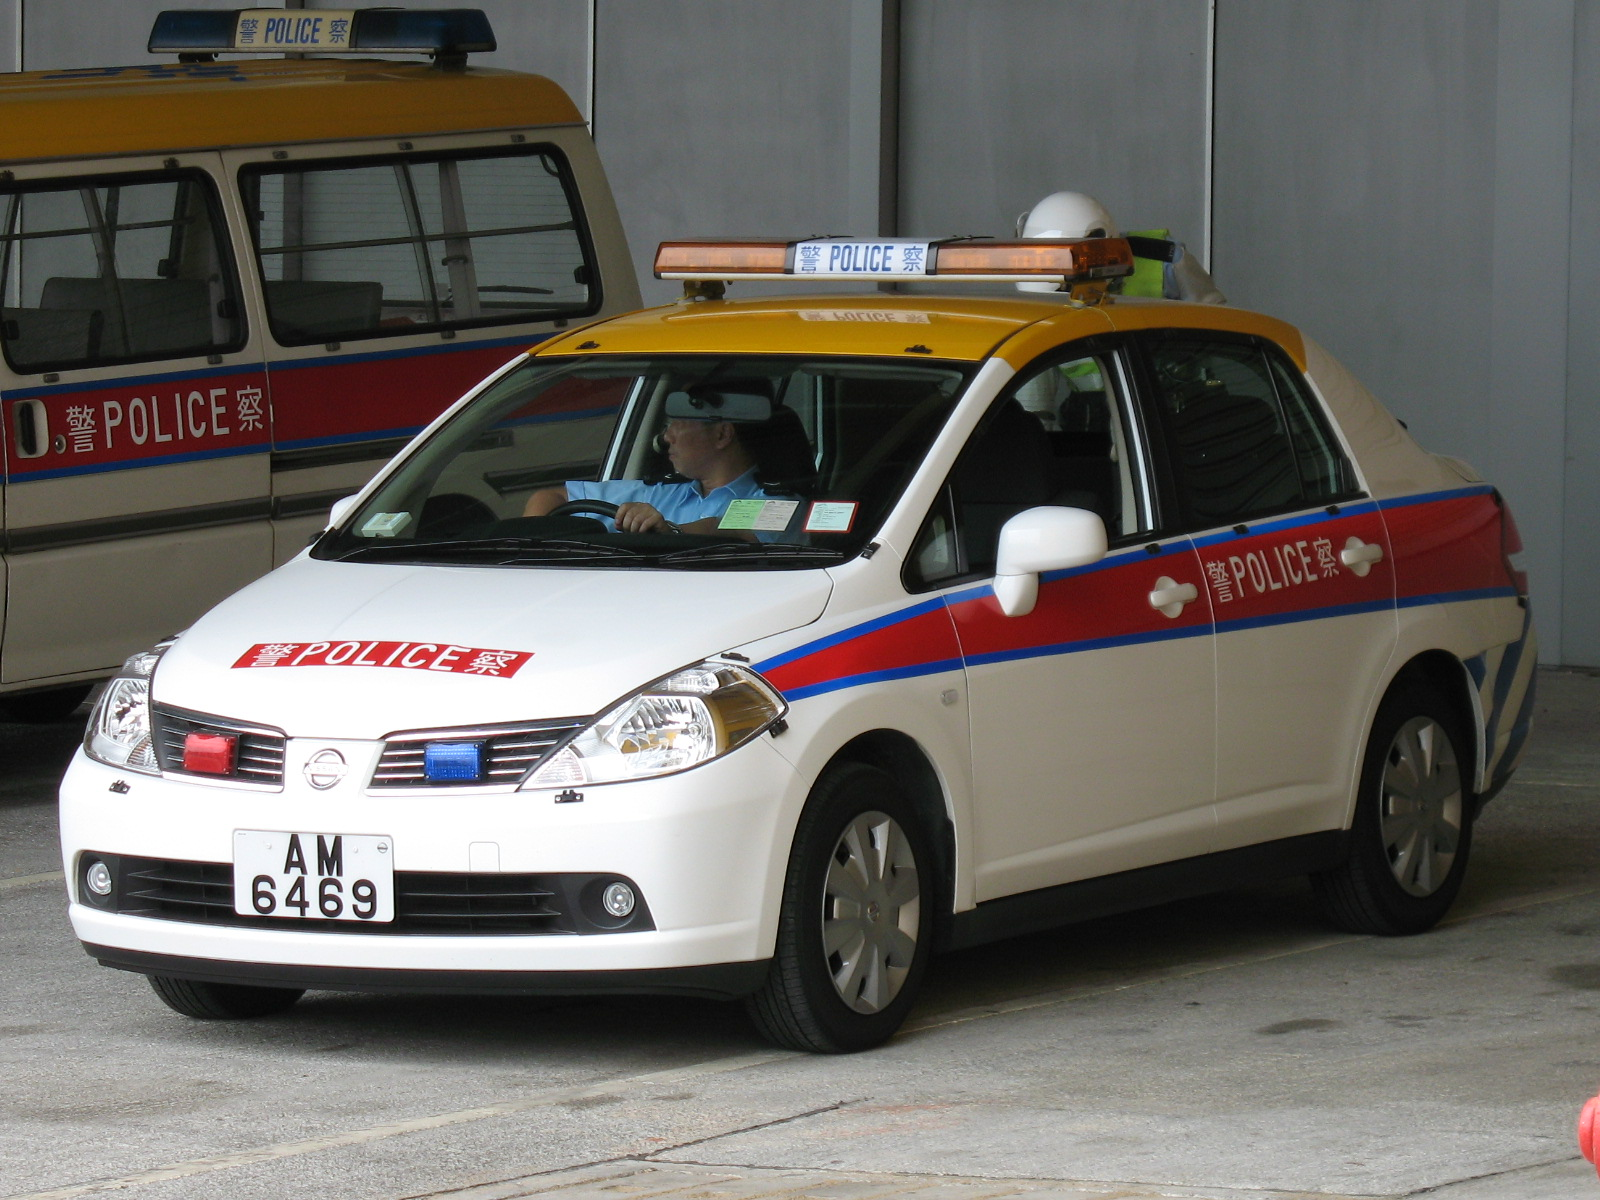 Airport Police car 26